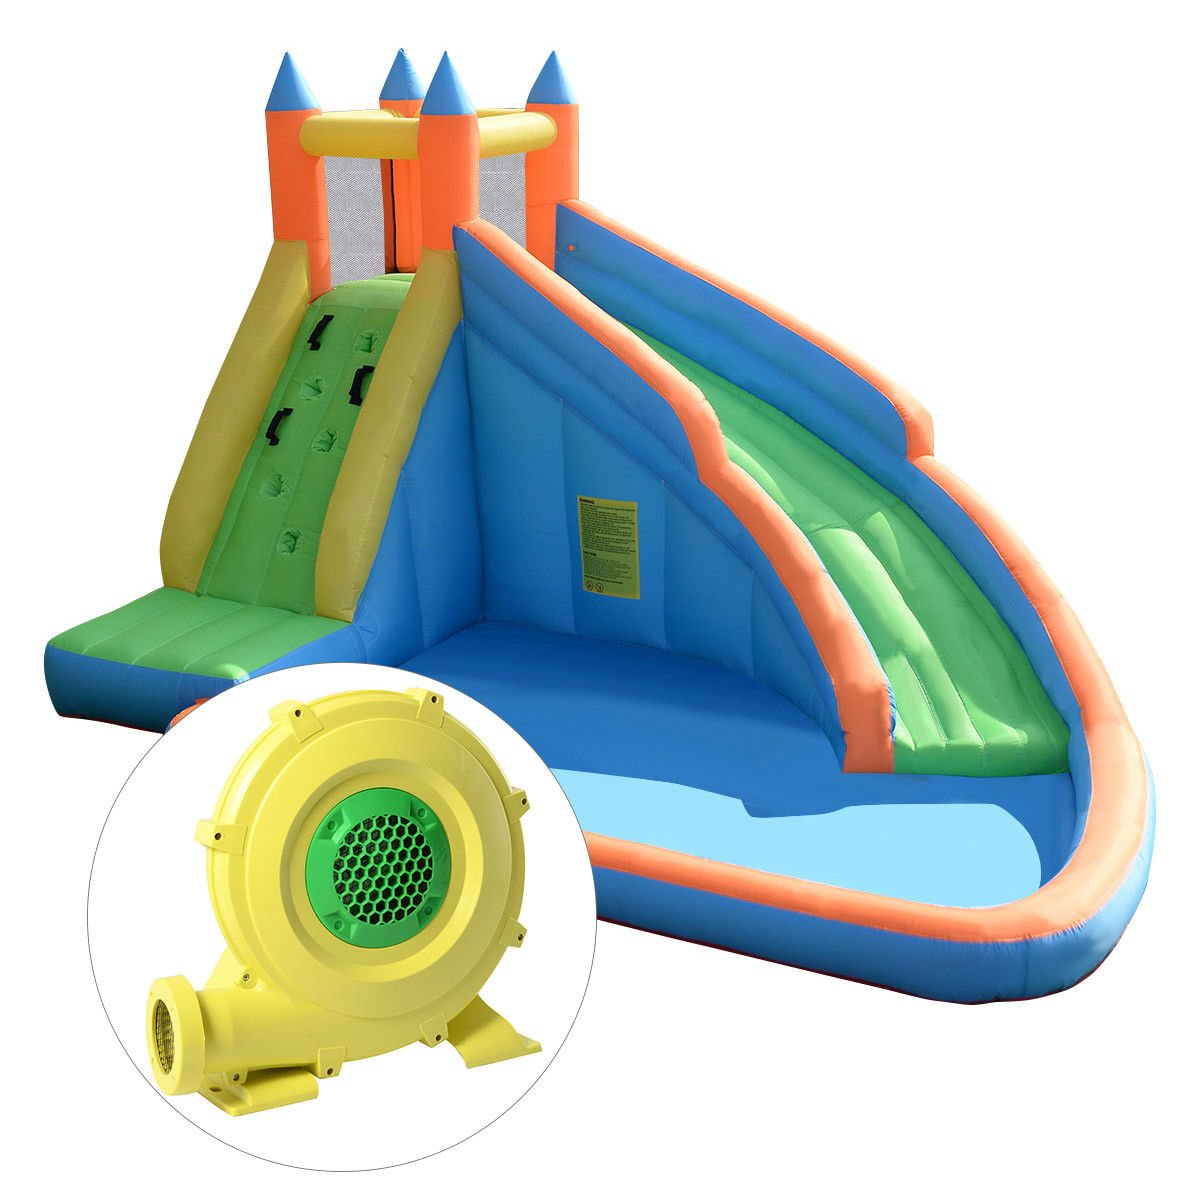 Costzon Inflatable Slide Bouncer, Water Pool Slide Climber Castle Bounce House (with 950W Blower) by Costzon (Image #1)